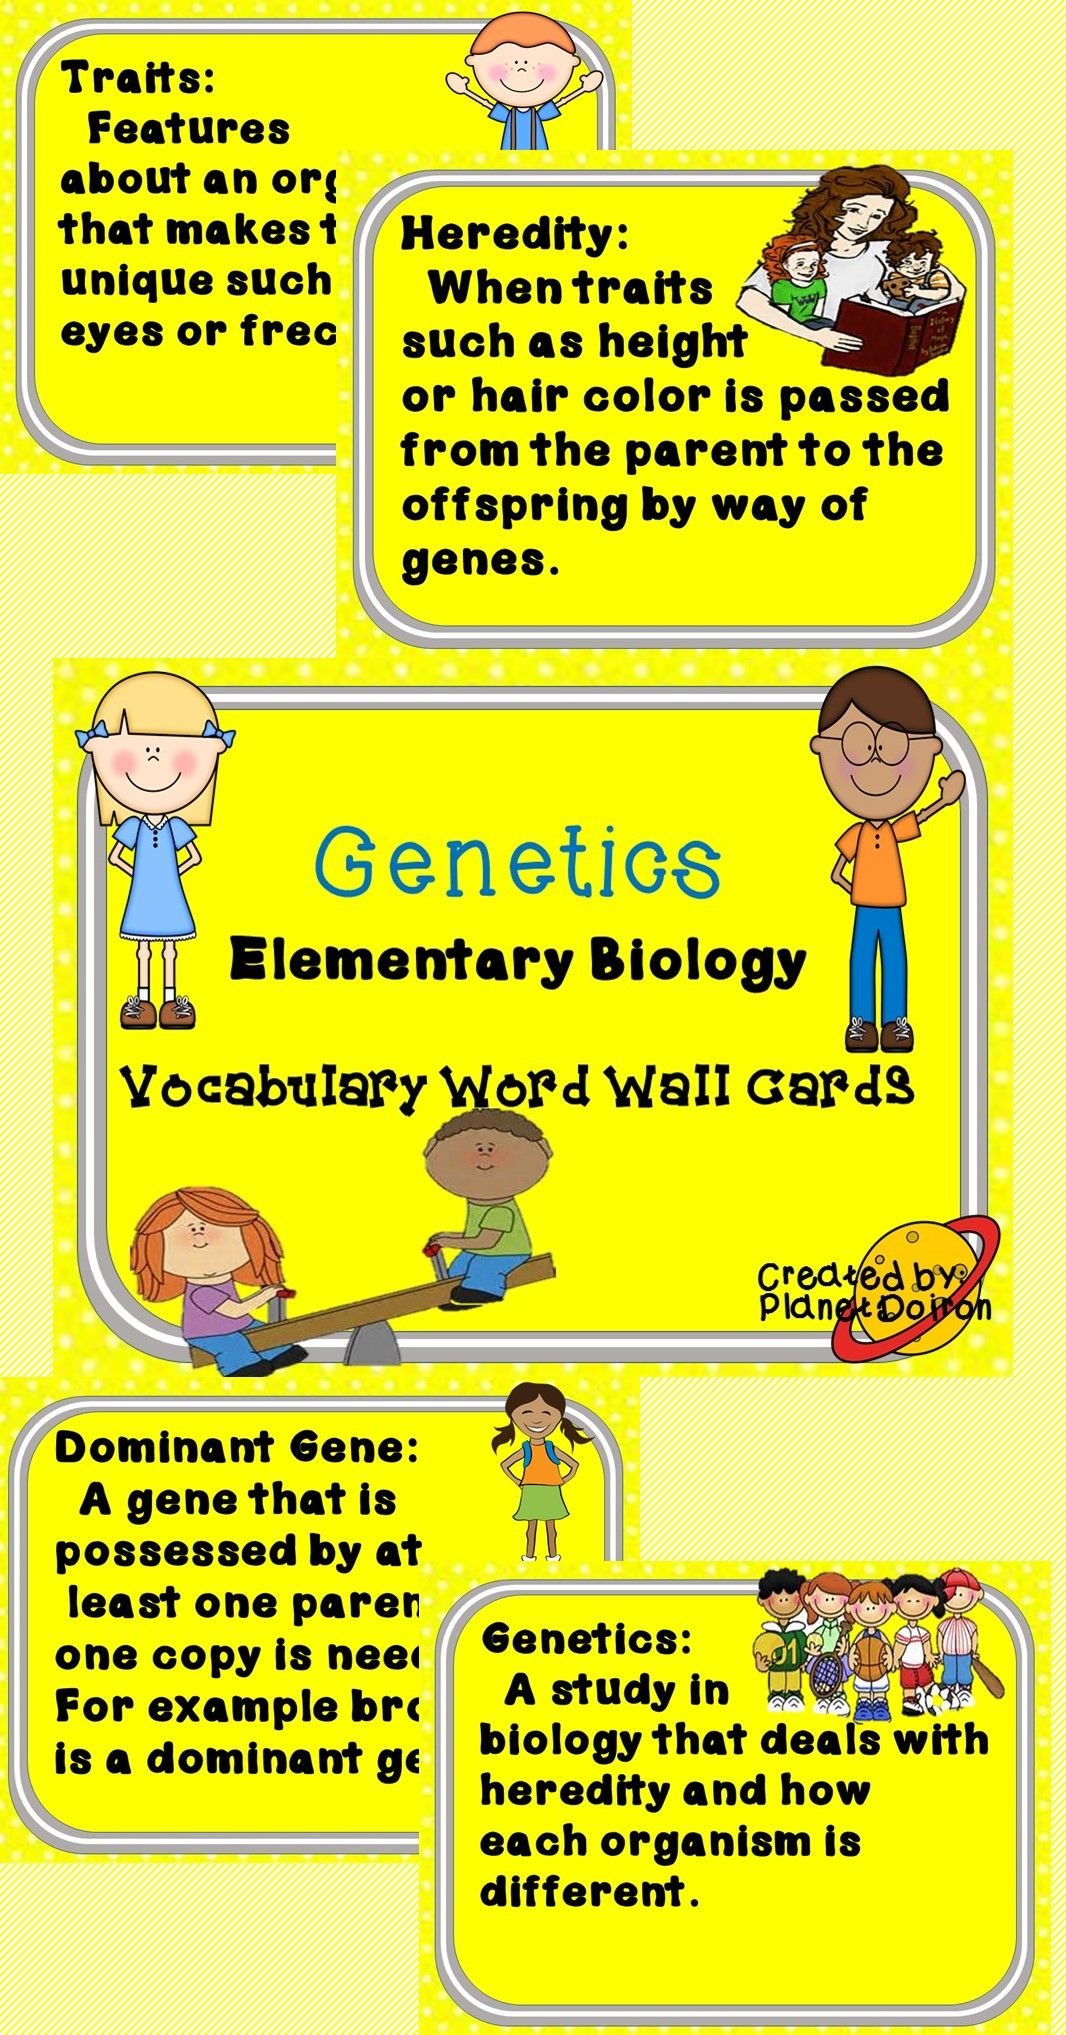 Elementary Biology Genetics Vocabulary Word Wall Cards